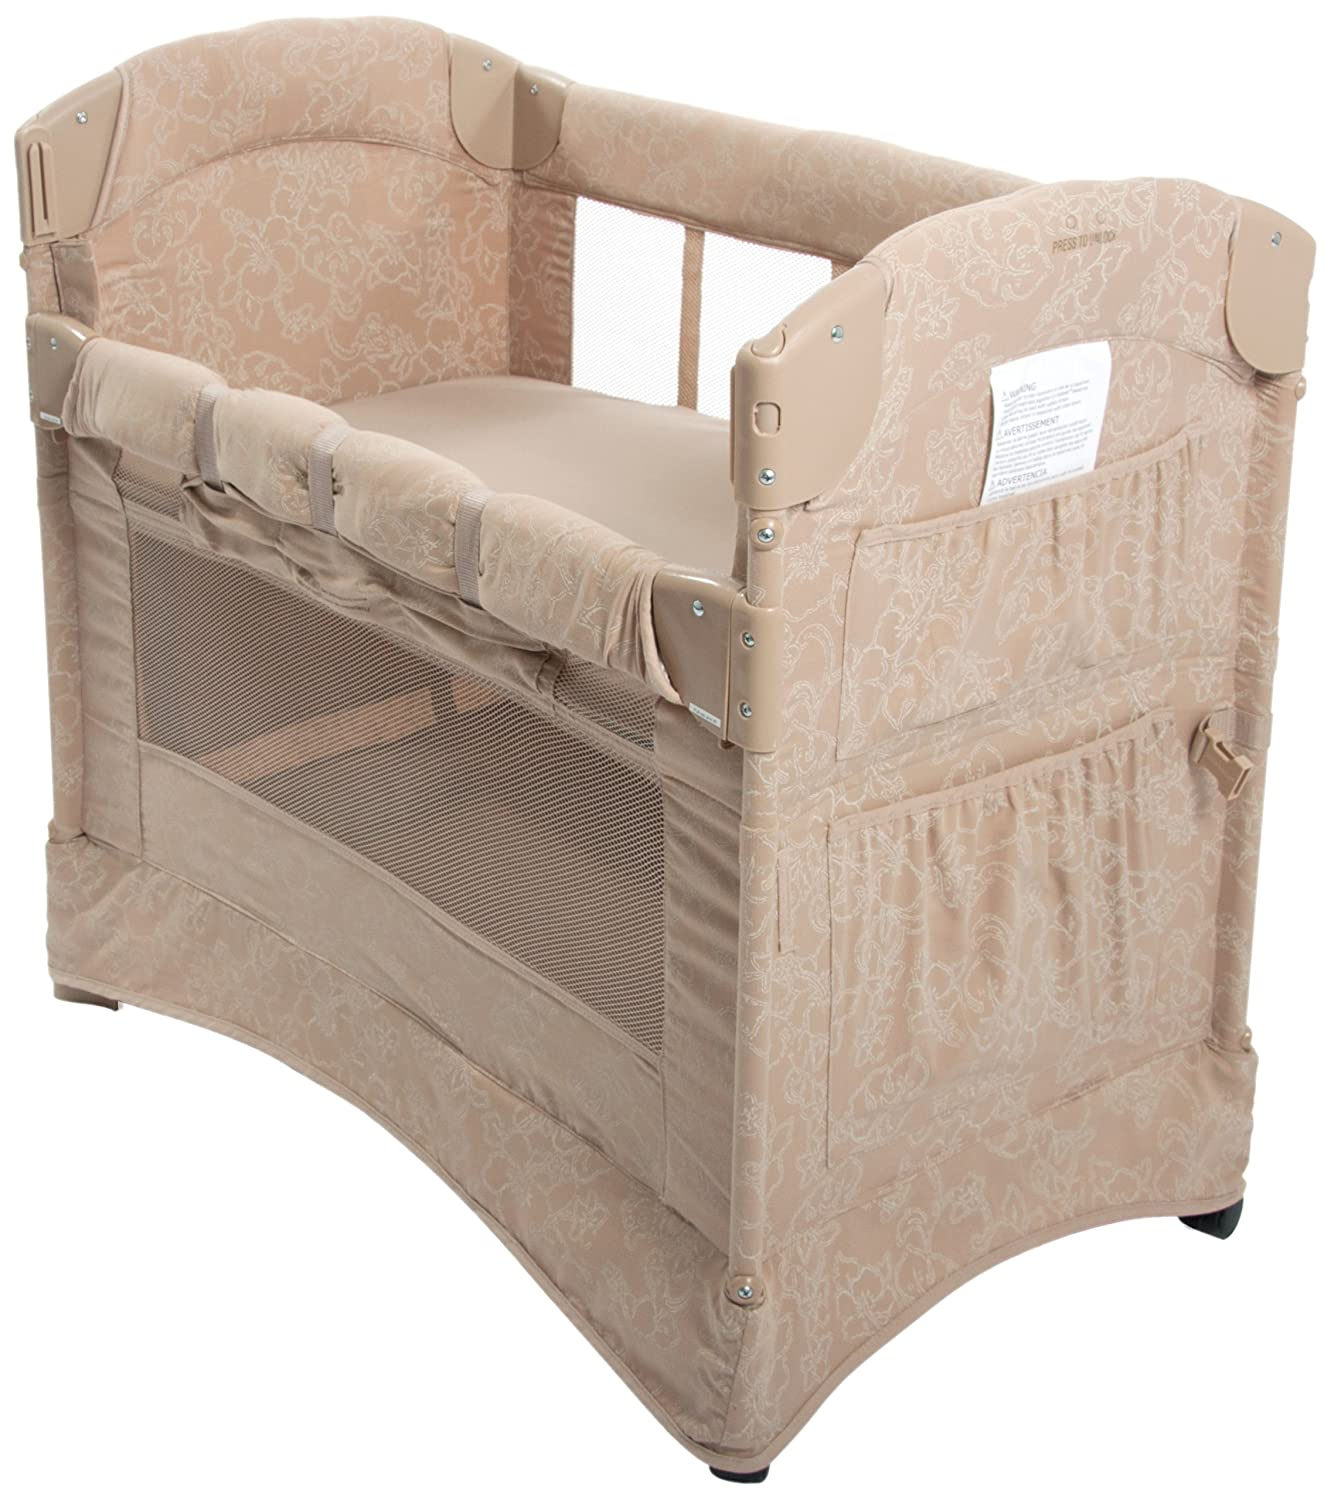 Amazon.com : Arm's Reach Co-Sleeper Curved Mini Collection, Toffee Hibiscus  (Discontinued by Manufacturer) : Toddler Beds : Baby